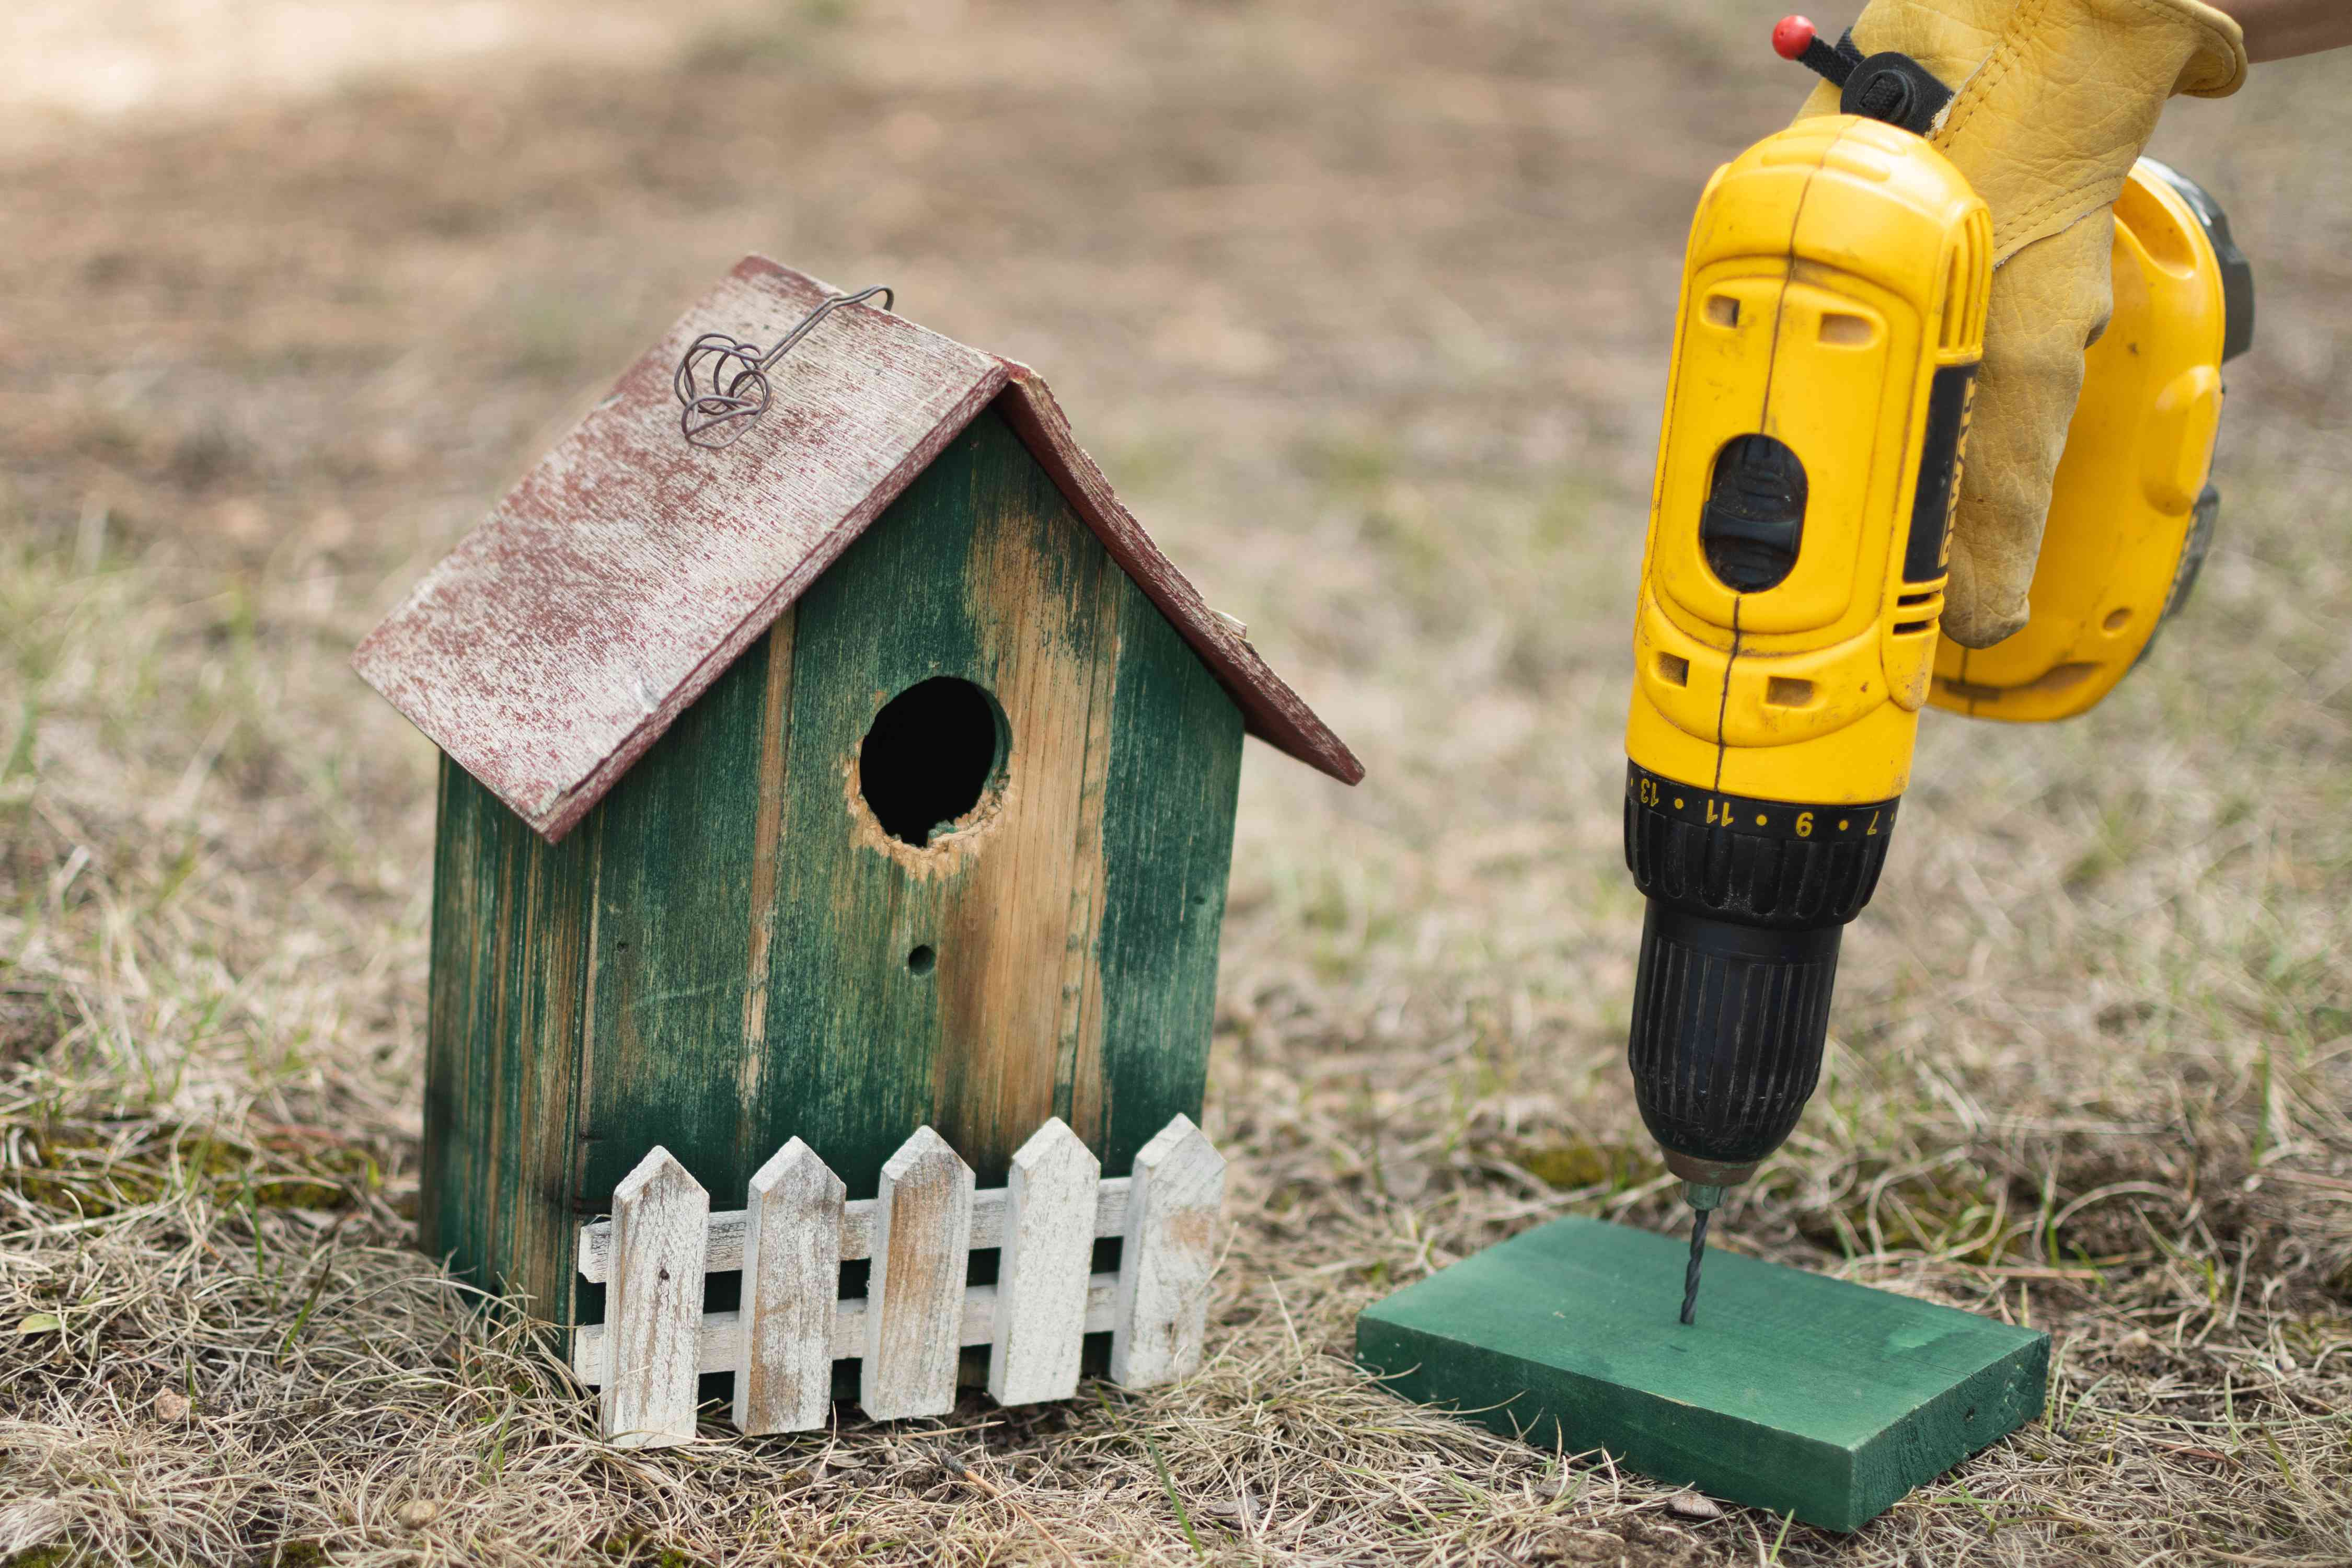 Wooden green birdhouse bottom secured with yellow electric drill